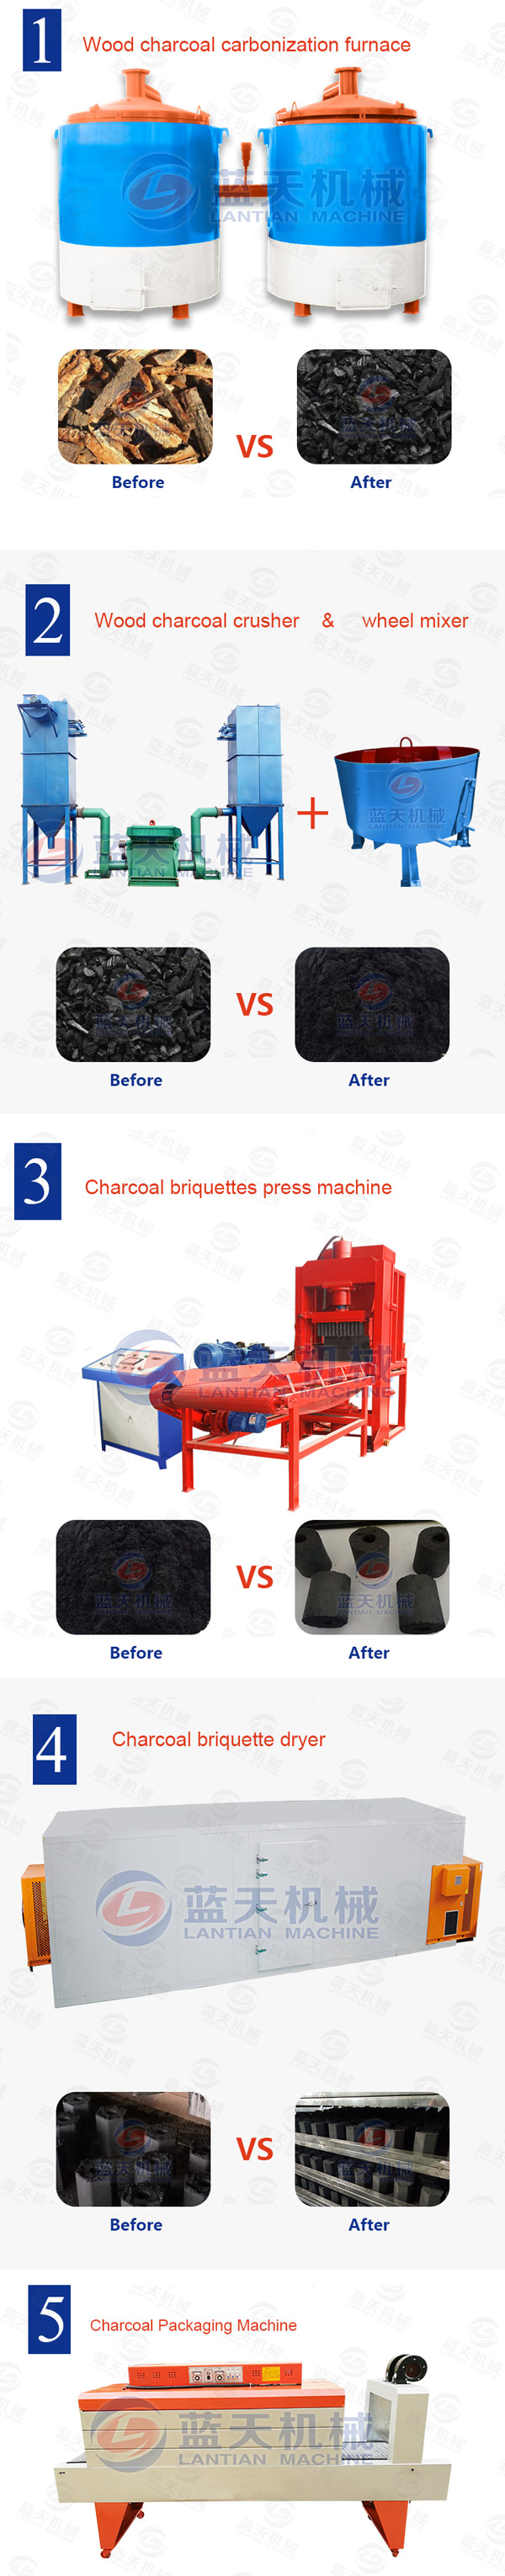 charcoal ball briquette press machine